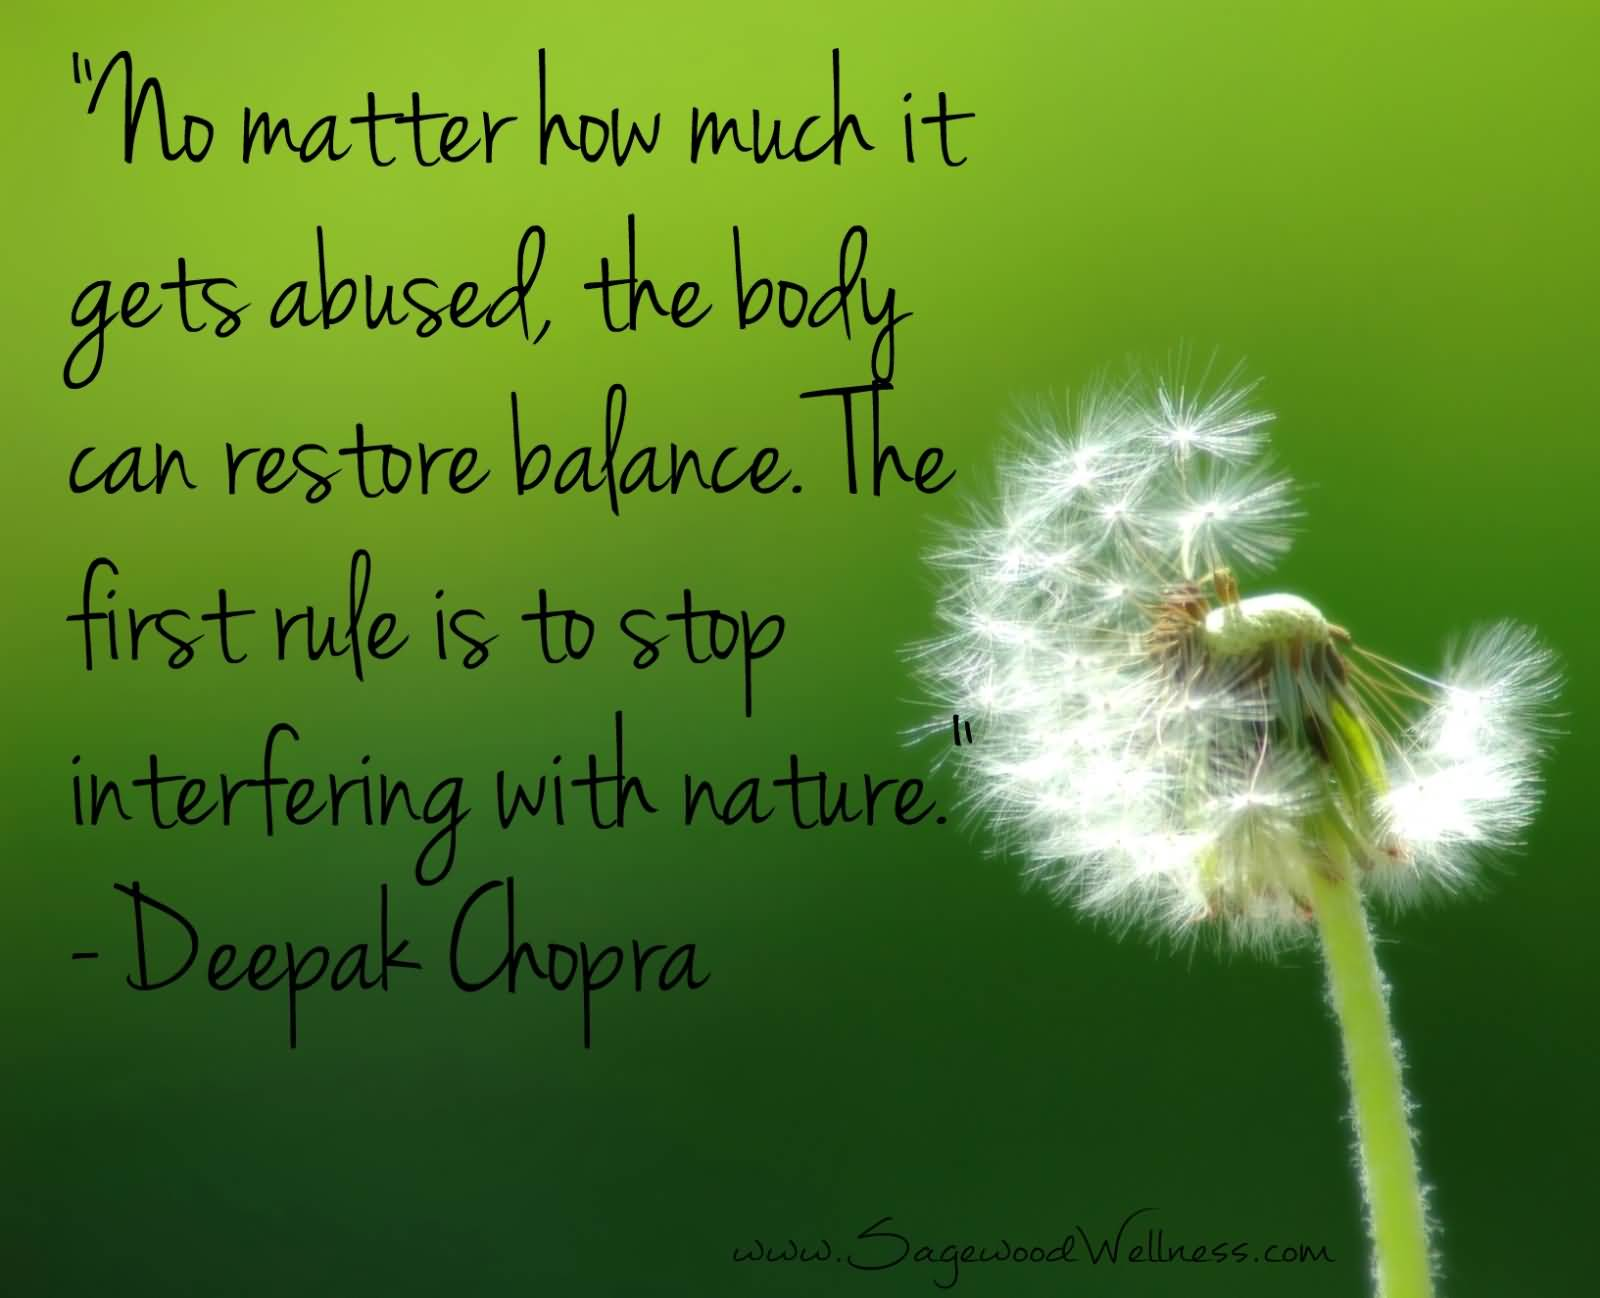 No matter how much it gets abused, the body can restore balance. The first rule is to stop interfering with nature. Deepark Chopra